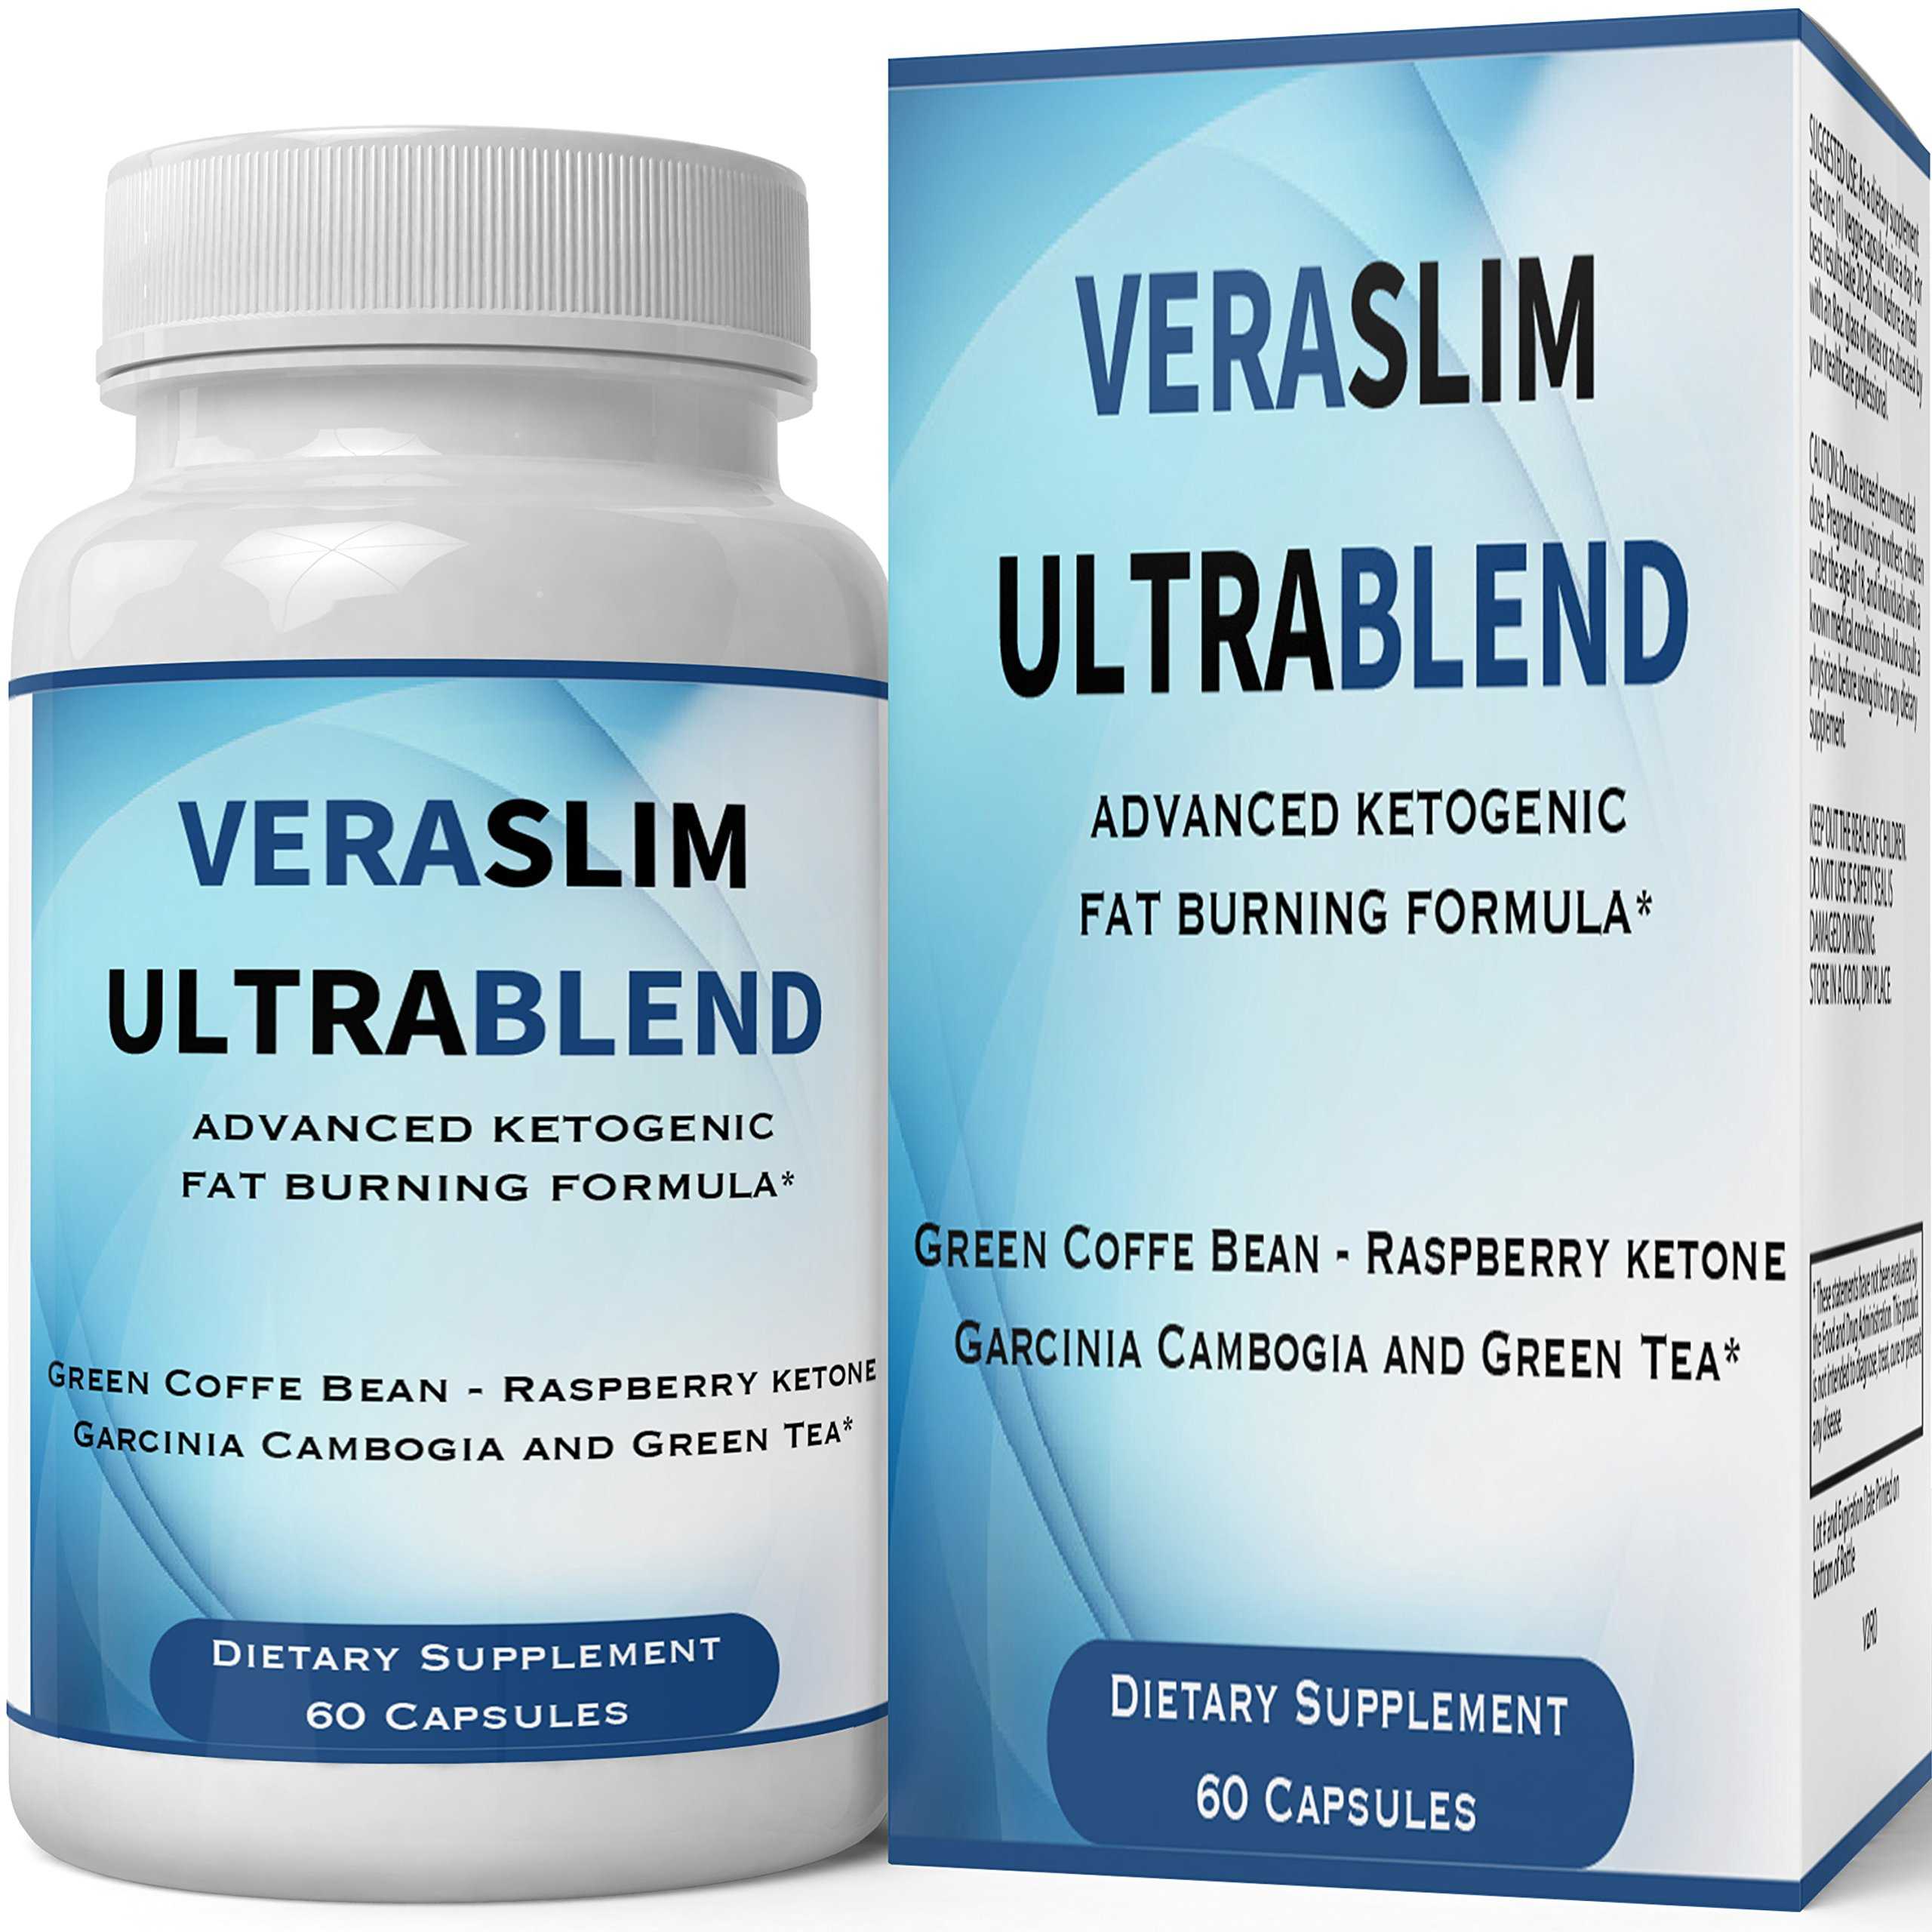 Vera Slim Ultra Blend Capsules with Garcinia Cambogia | Pills Weight Loss Supplement - Extreme Weightloss Lean Fat Burner | Pastillas for Women Men Natural Diet Supplement 60 Count